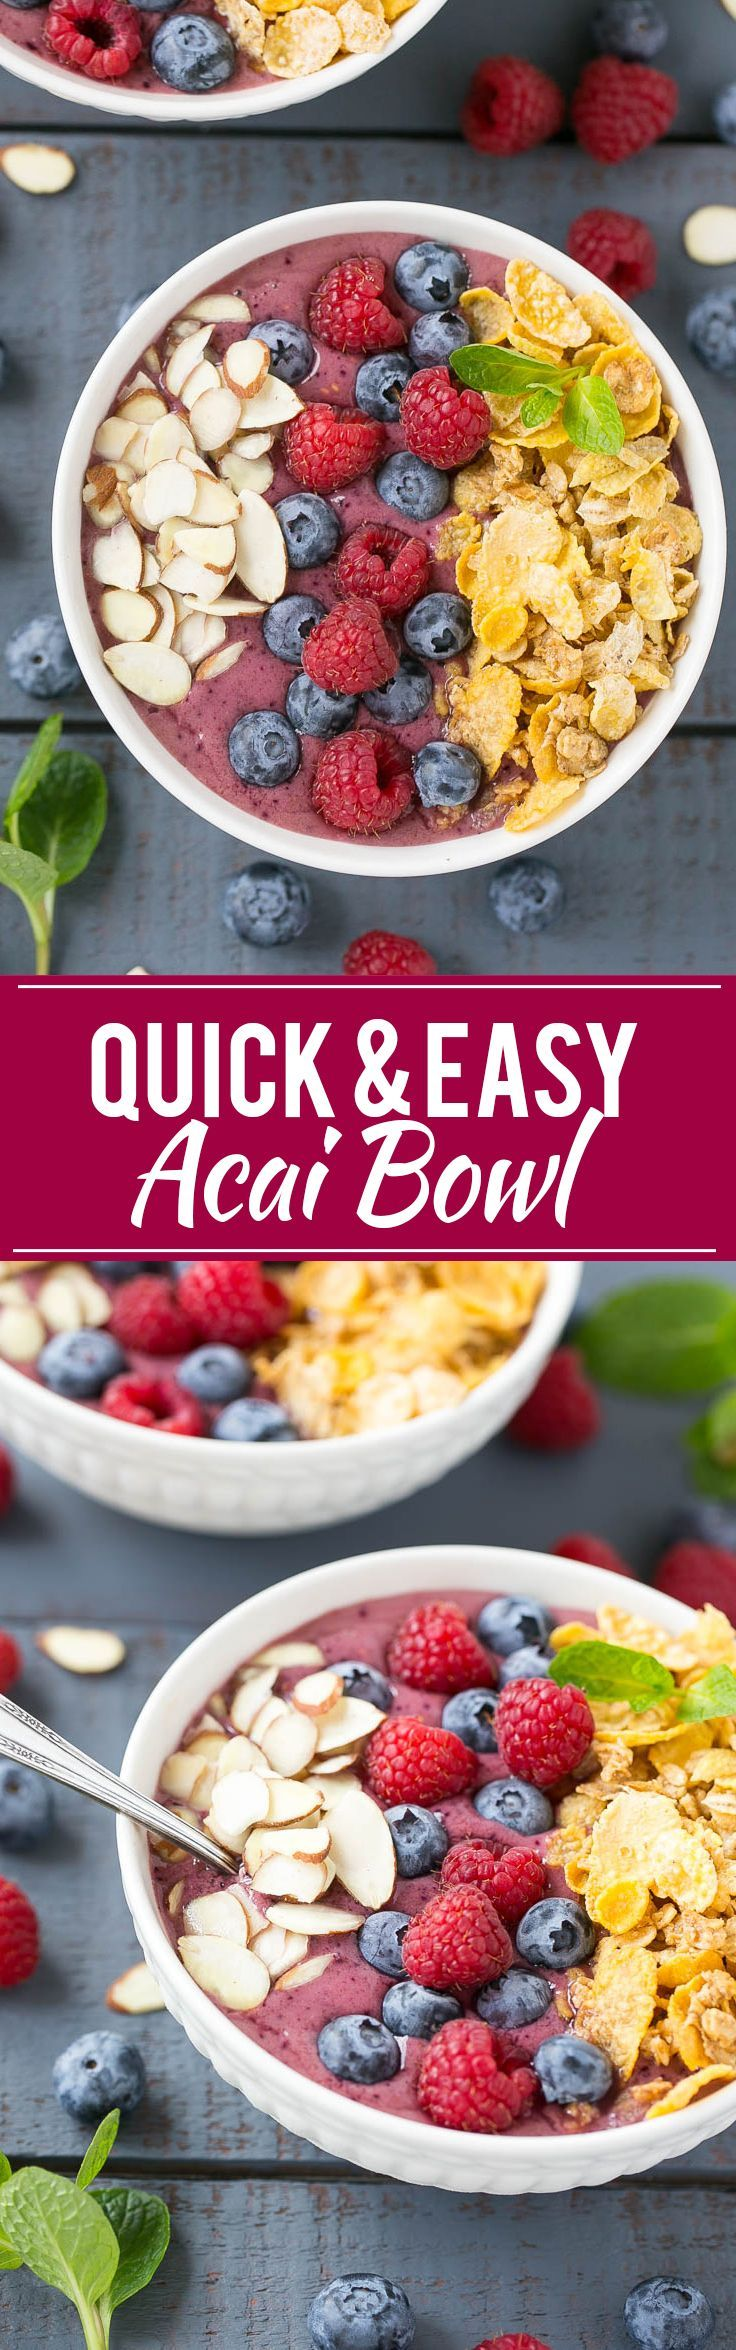 This recipe for an acai bowl is a smoothie made with fruit and yogurt that's served in a bowl and finished with a fun and colorful variety of toppings including Honey Bunches of Oats Cereal. #CerealAnytime ad